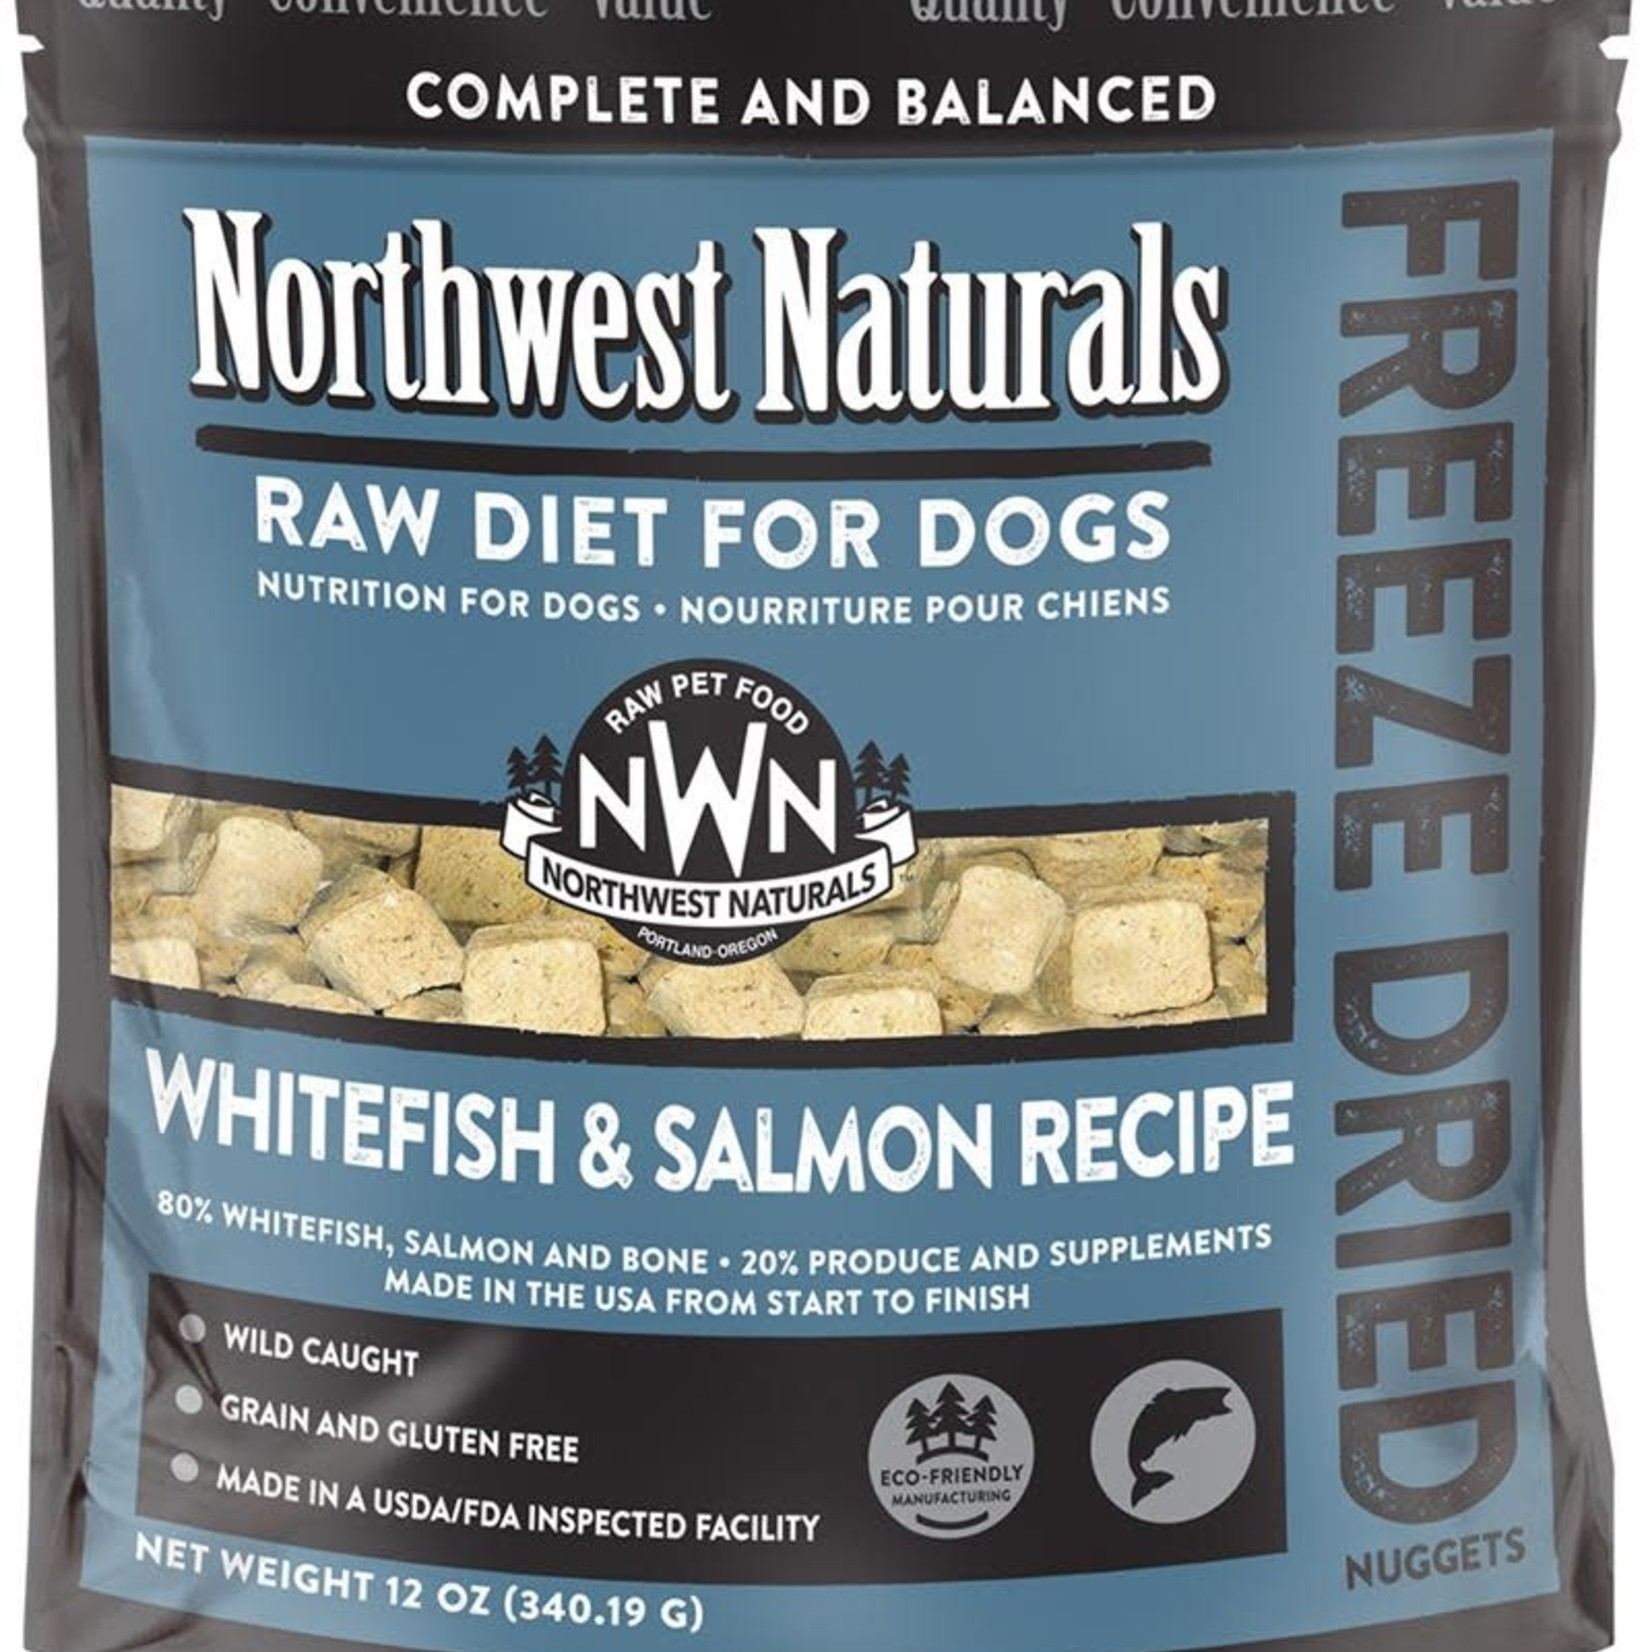 Northwest Naturals Northwest Naturals Dog Freeze-dried Whitefish & Salmon Nuggets 12 OZ